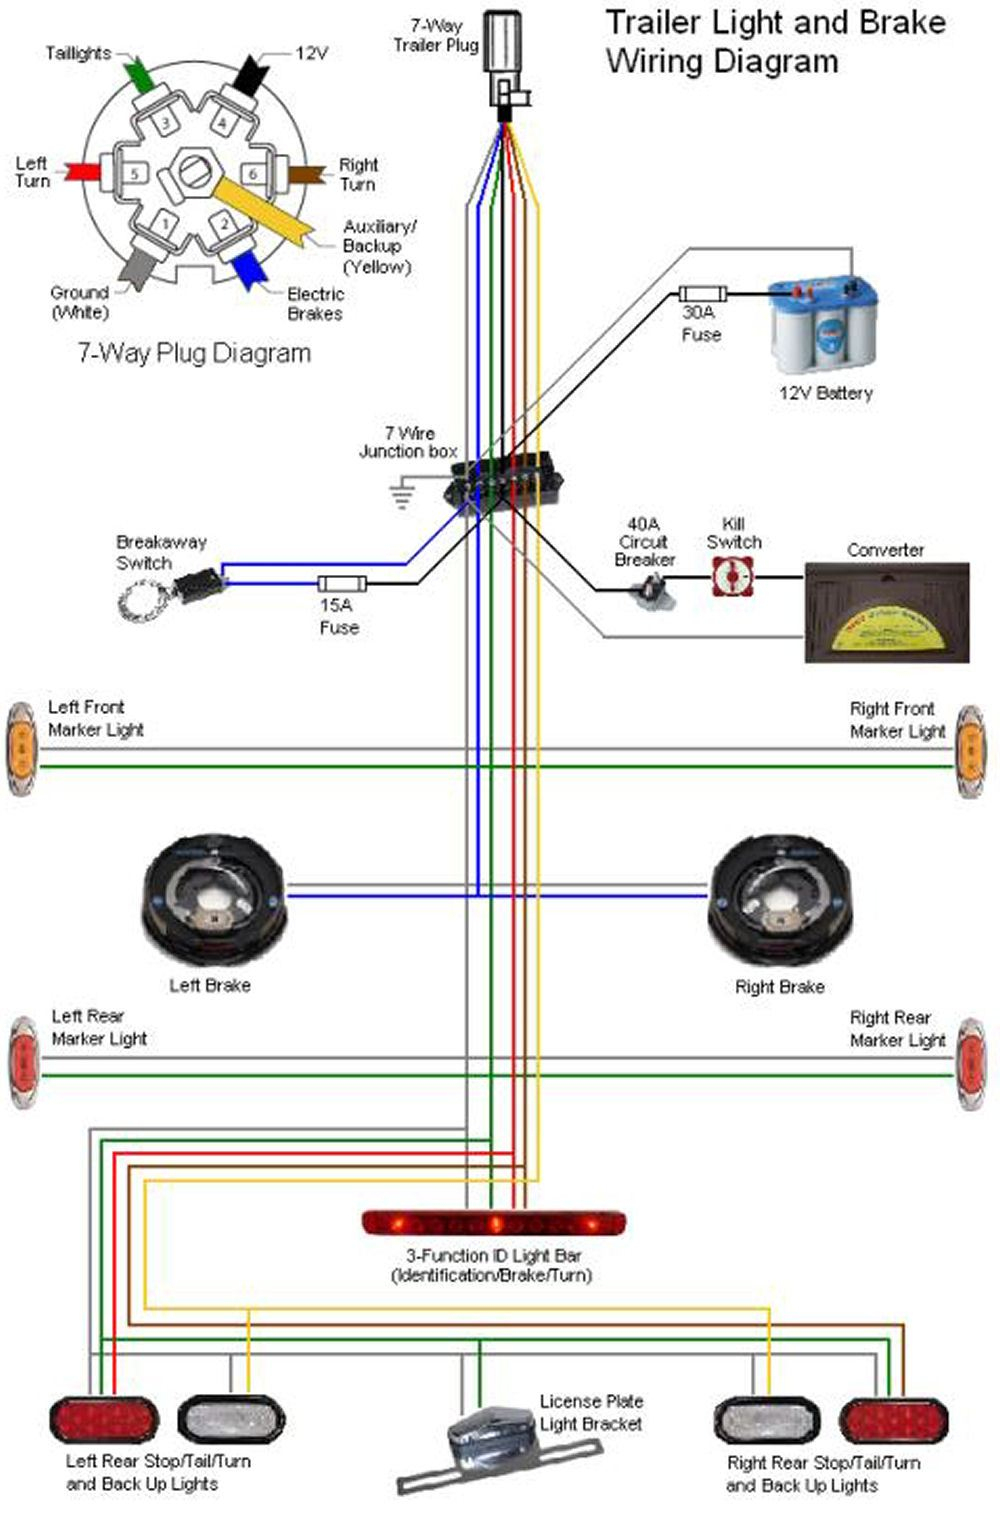 rv 7 wire diagram wiring diagramrv wiring diagram 7 wire wiring diagram schemarv 7 plug wiring diagram wiring diagram rv wiring